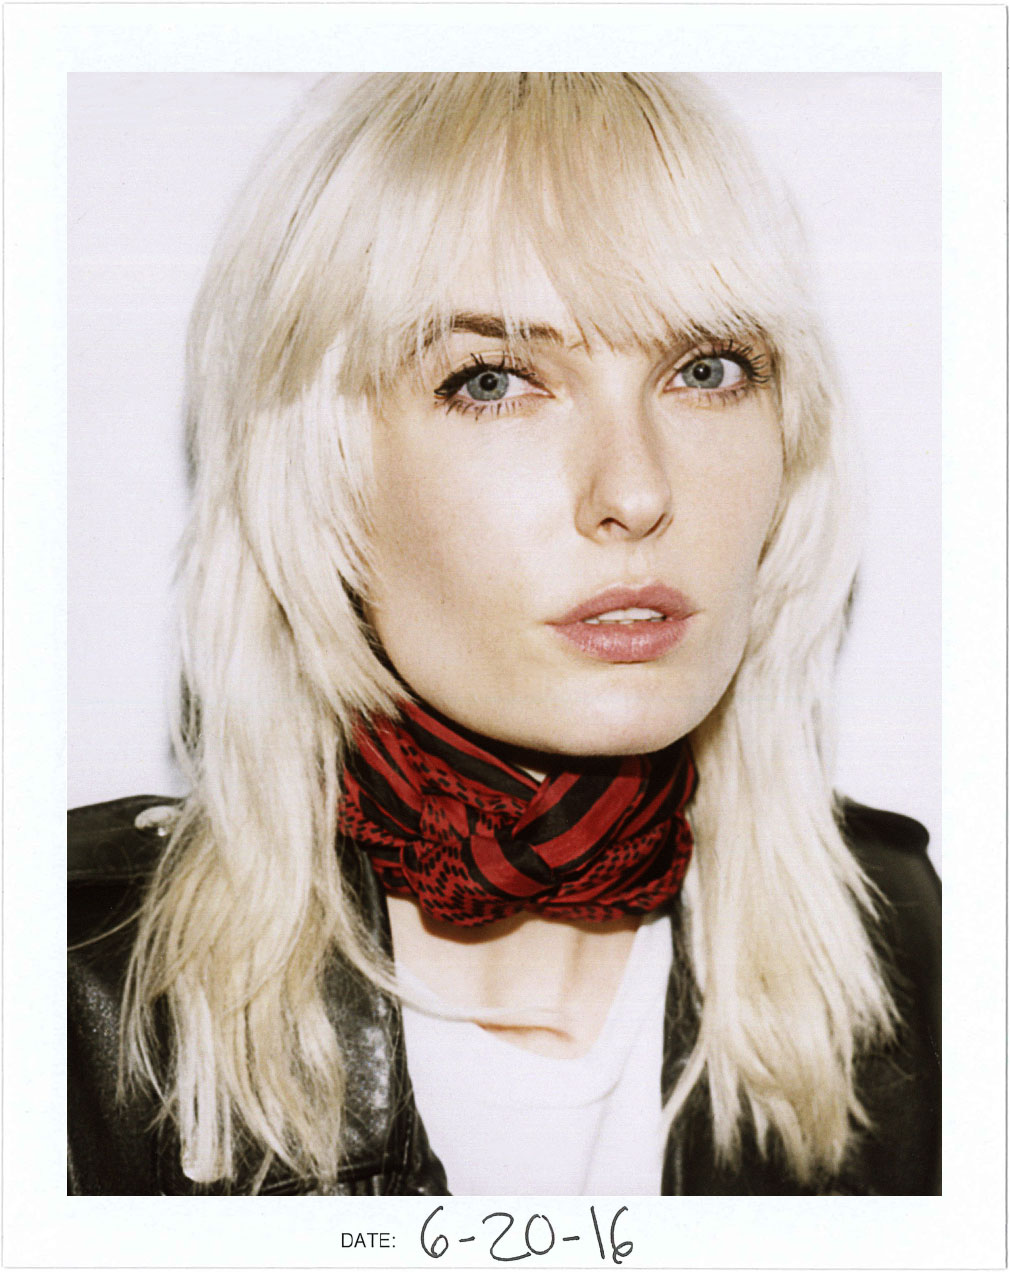 Singer & Songwriter Ace Harper Polaroid for Nice People Only by Jane Smith Creative Agency